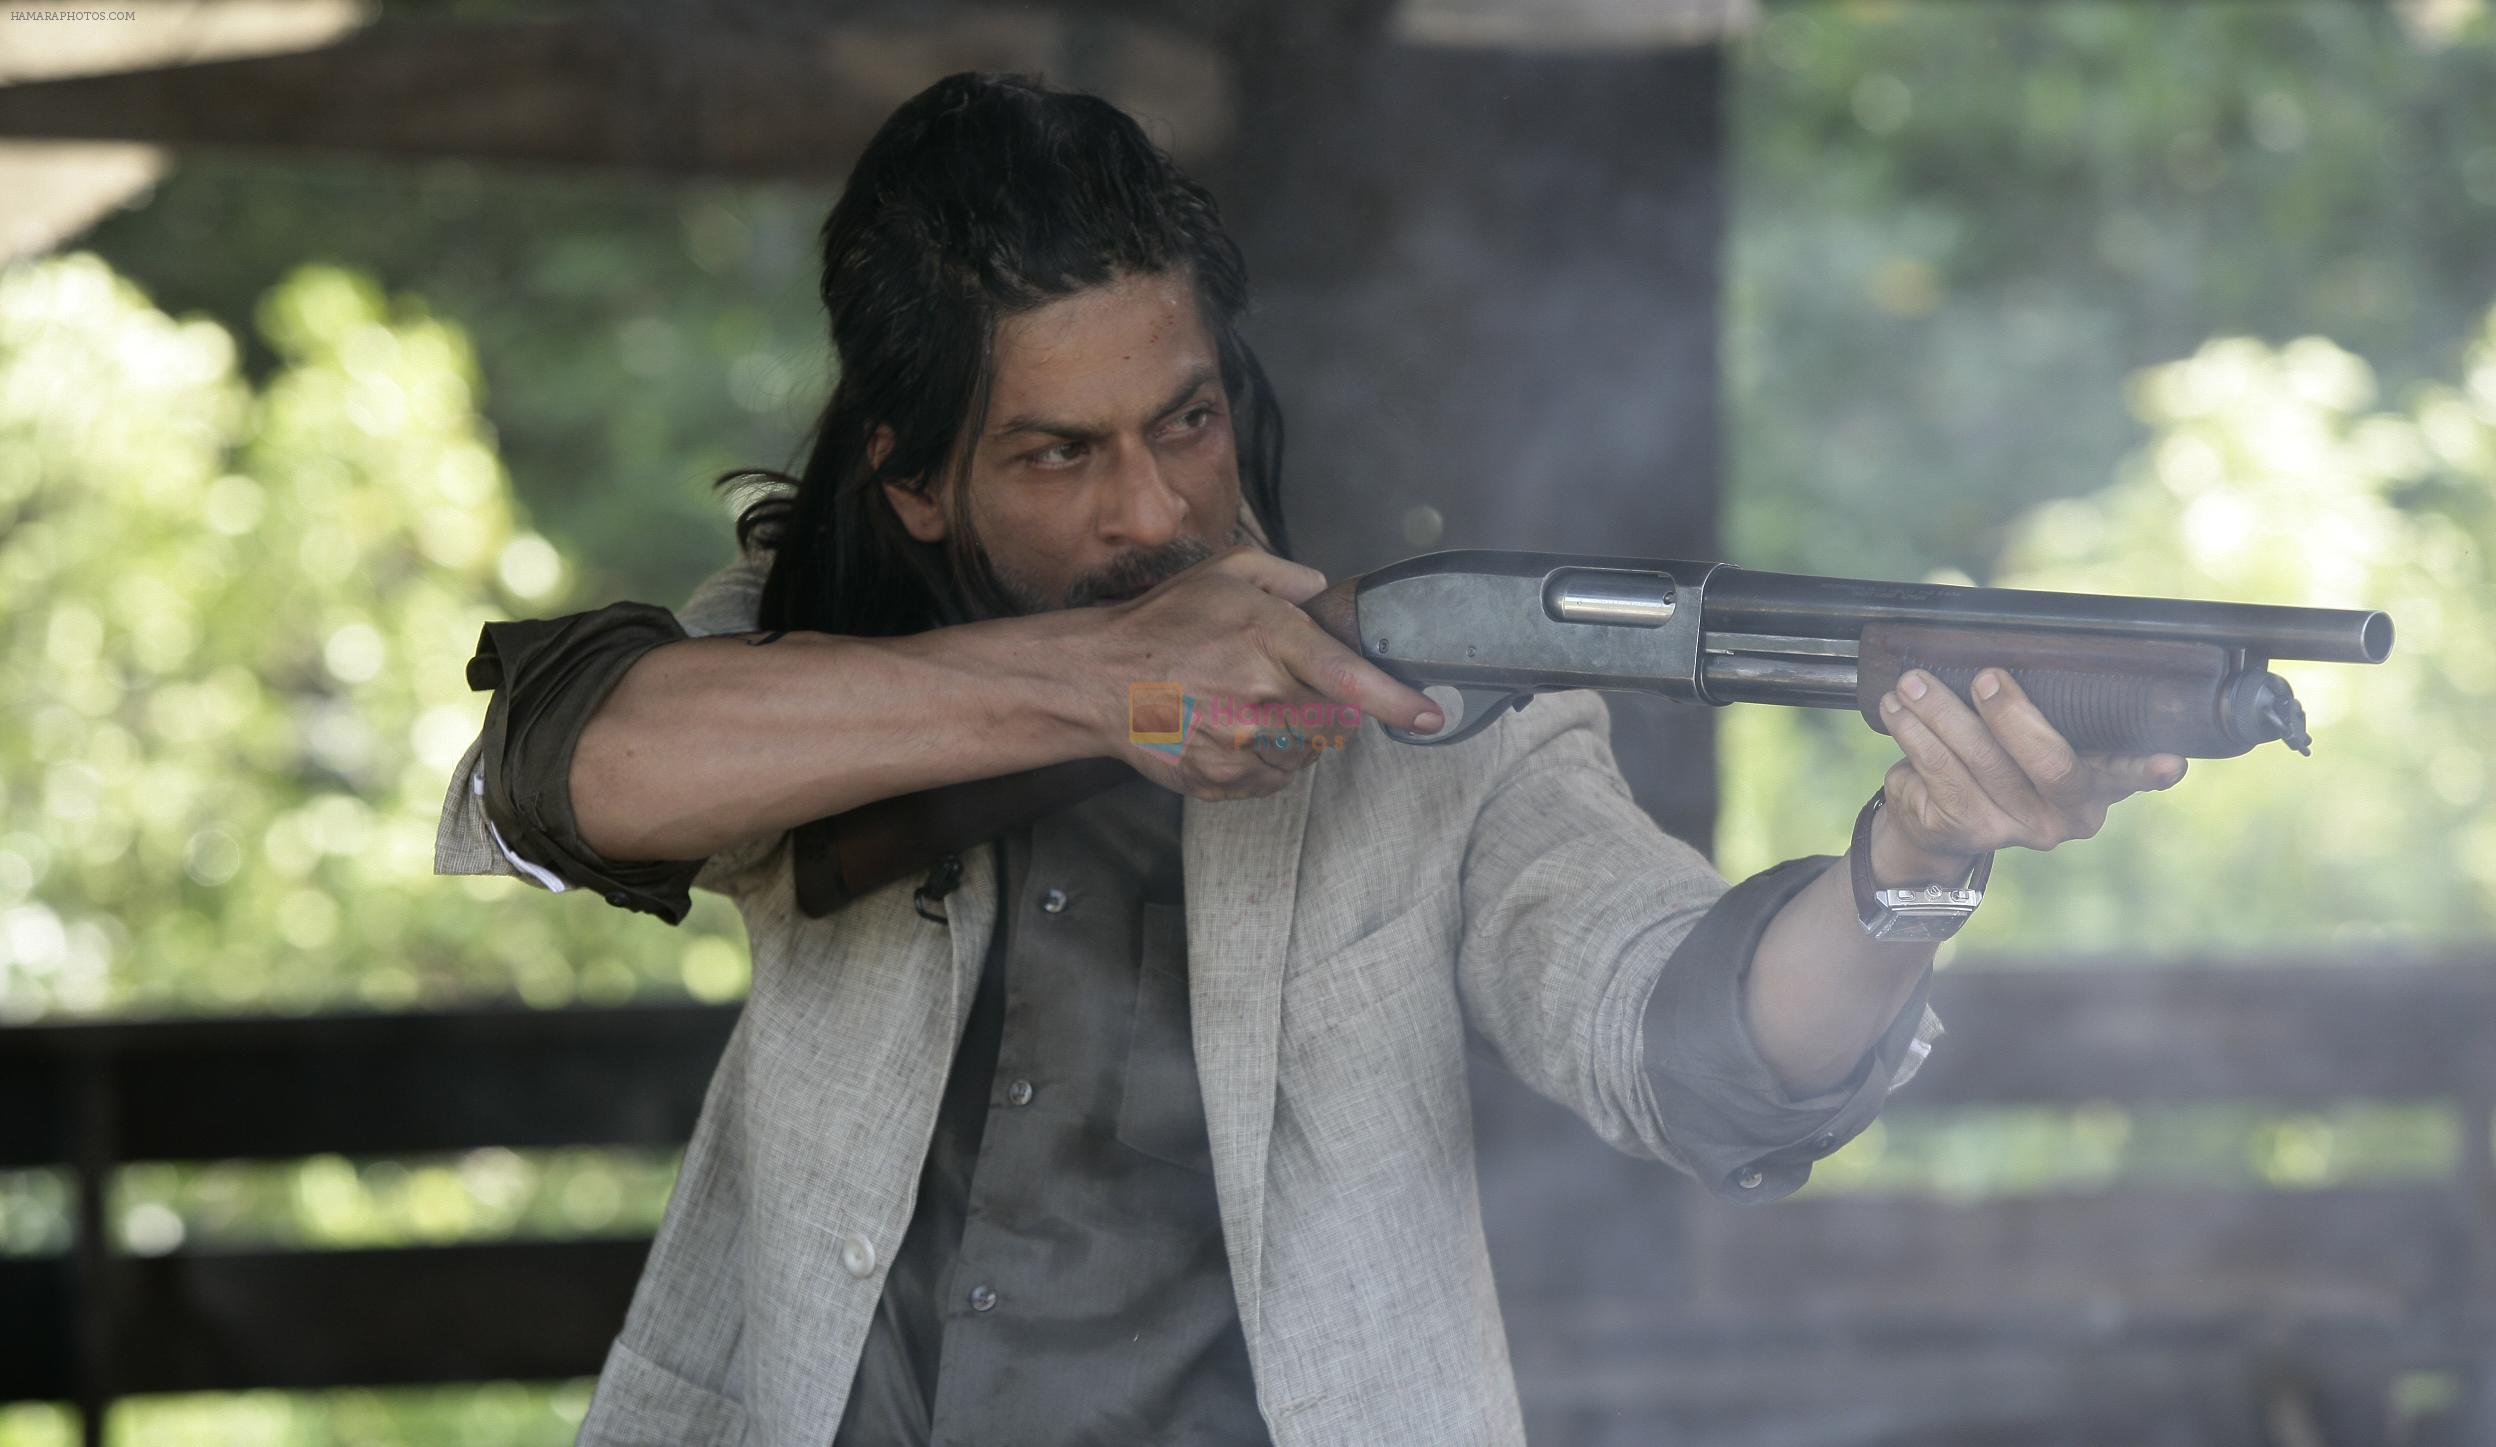 Shahrukh Khan in the still from movie Don 2